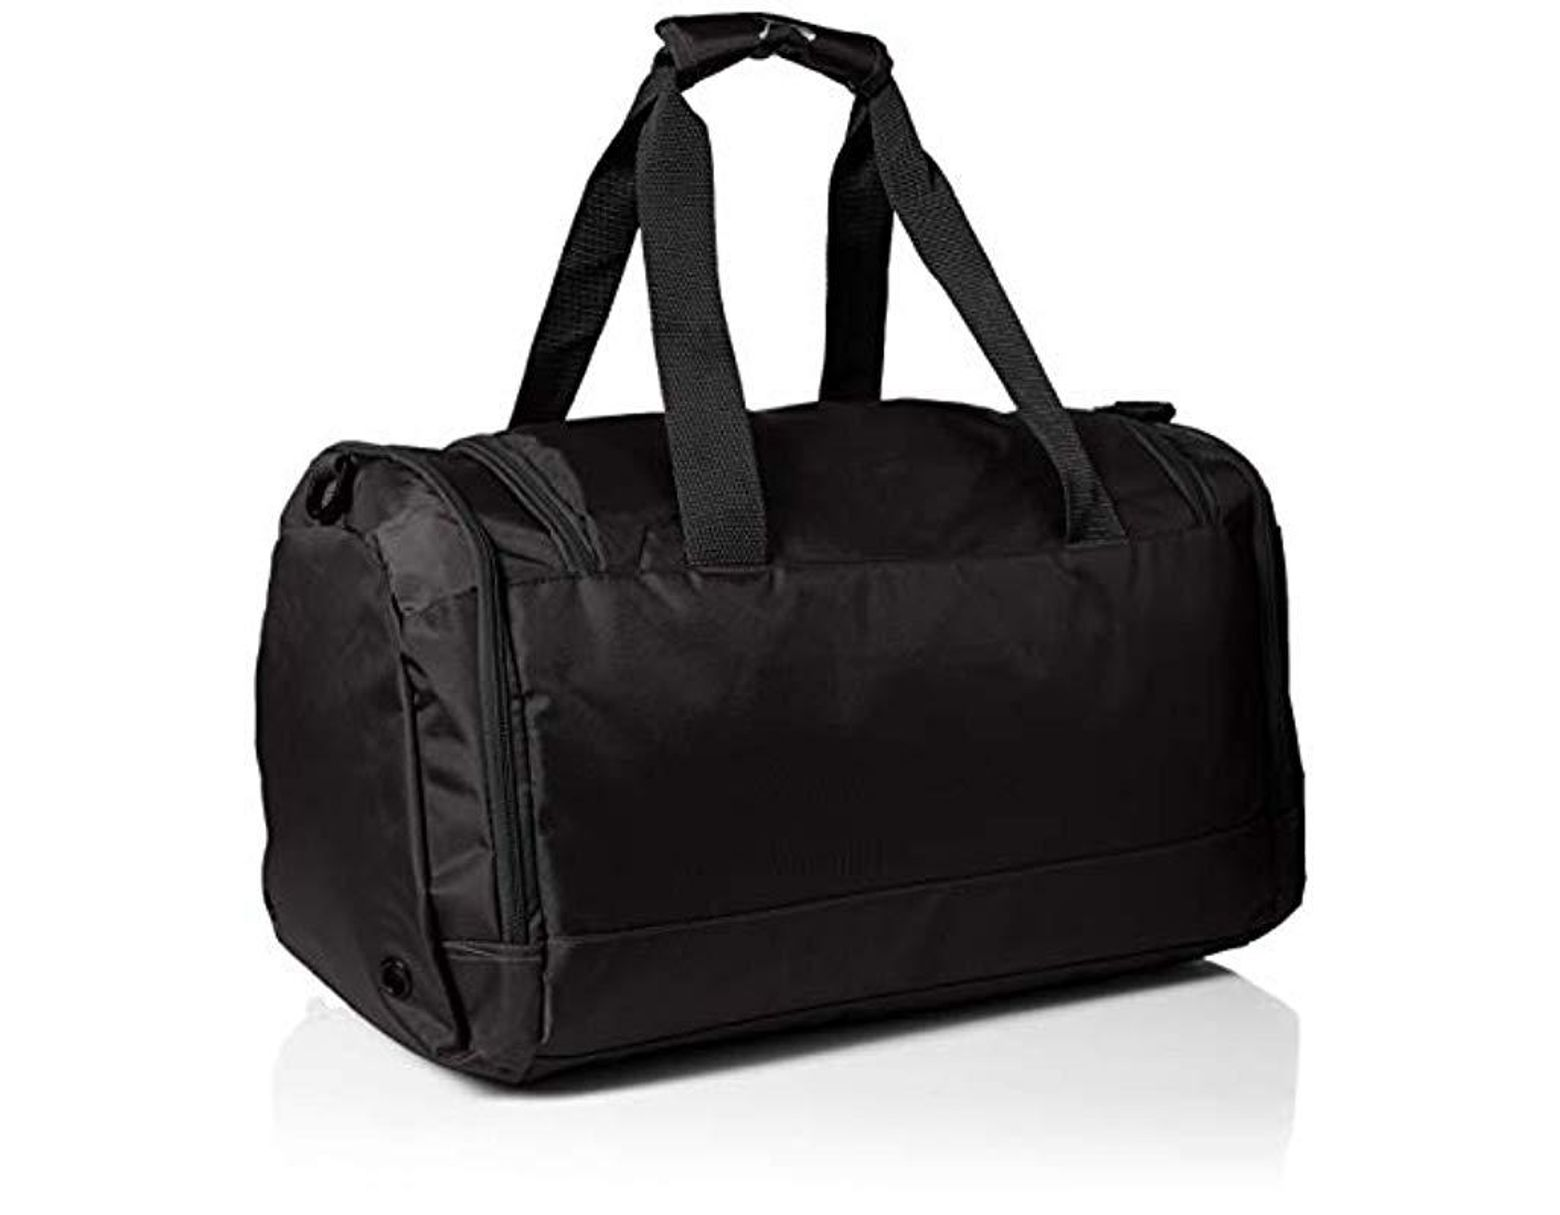 a37e17593892 Men's Black Aesthetic Duffel